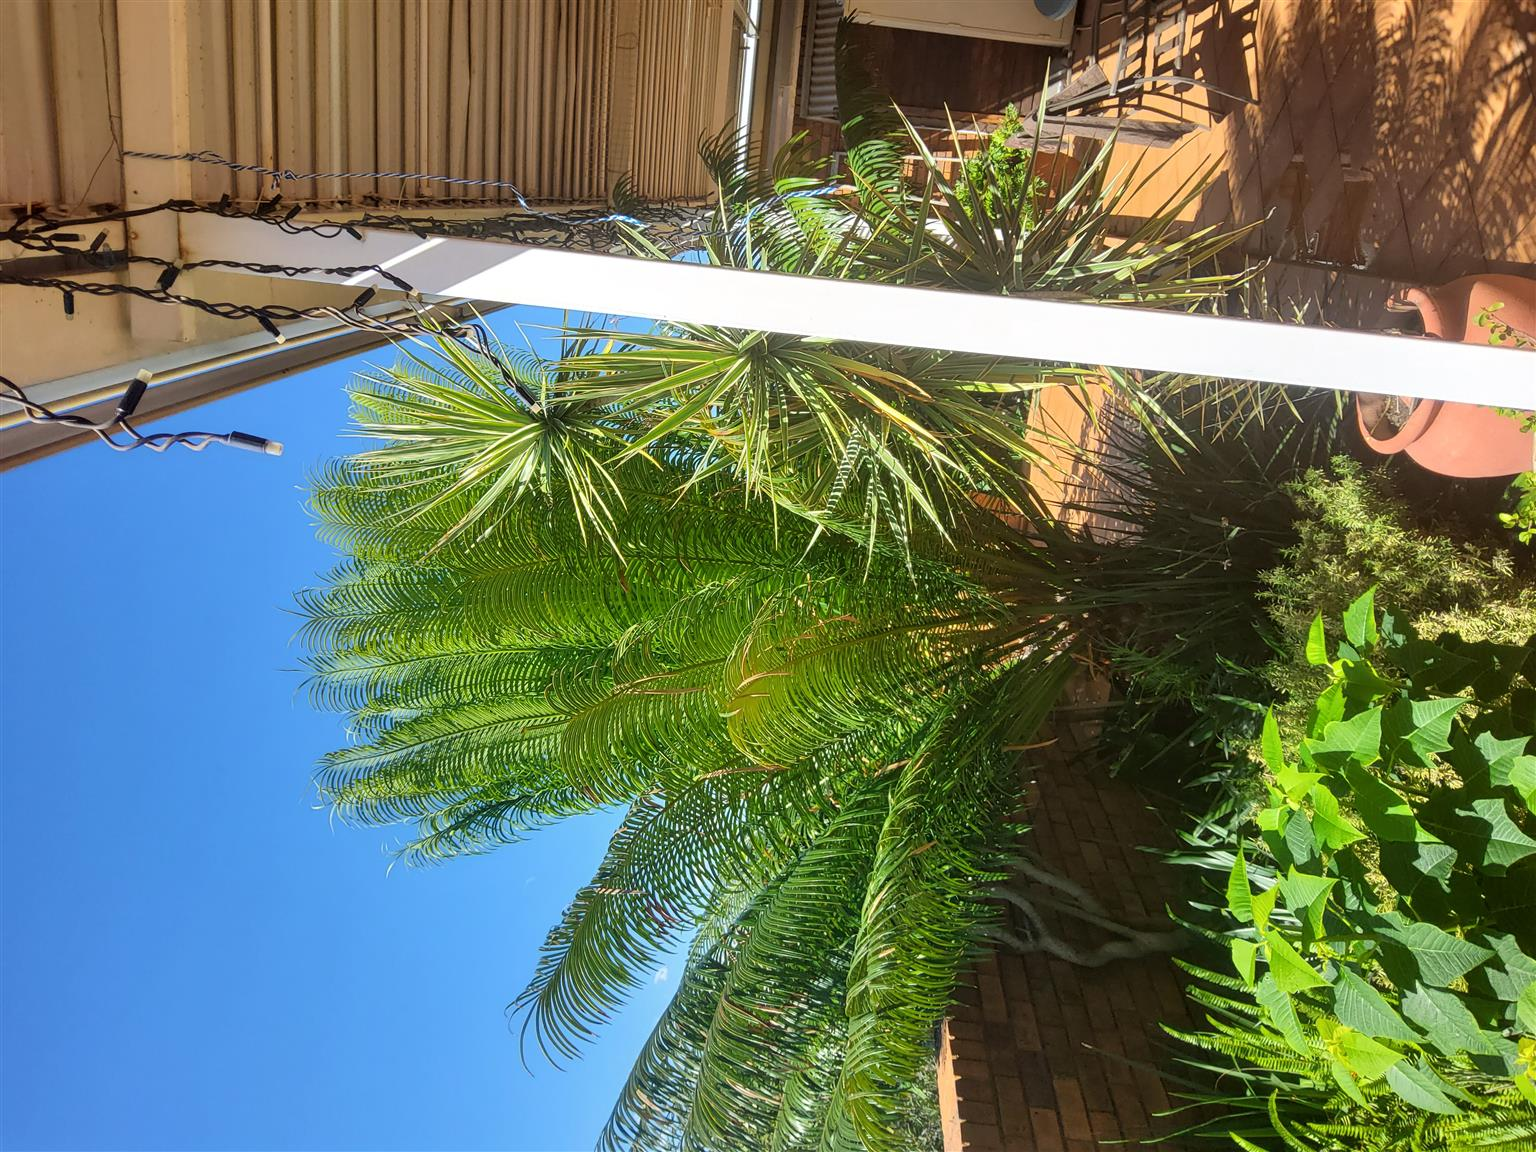 Cycad for sale